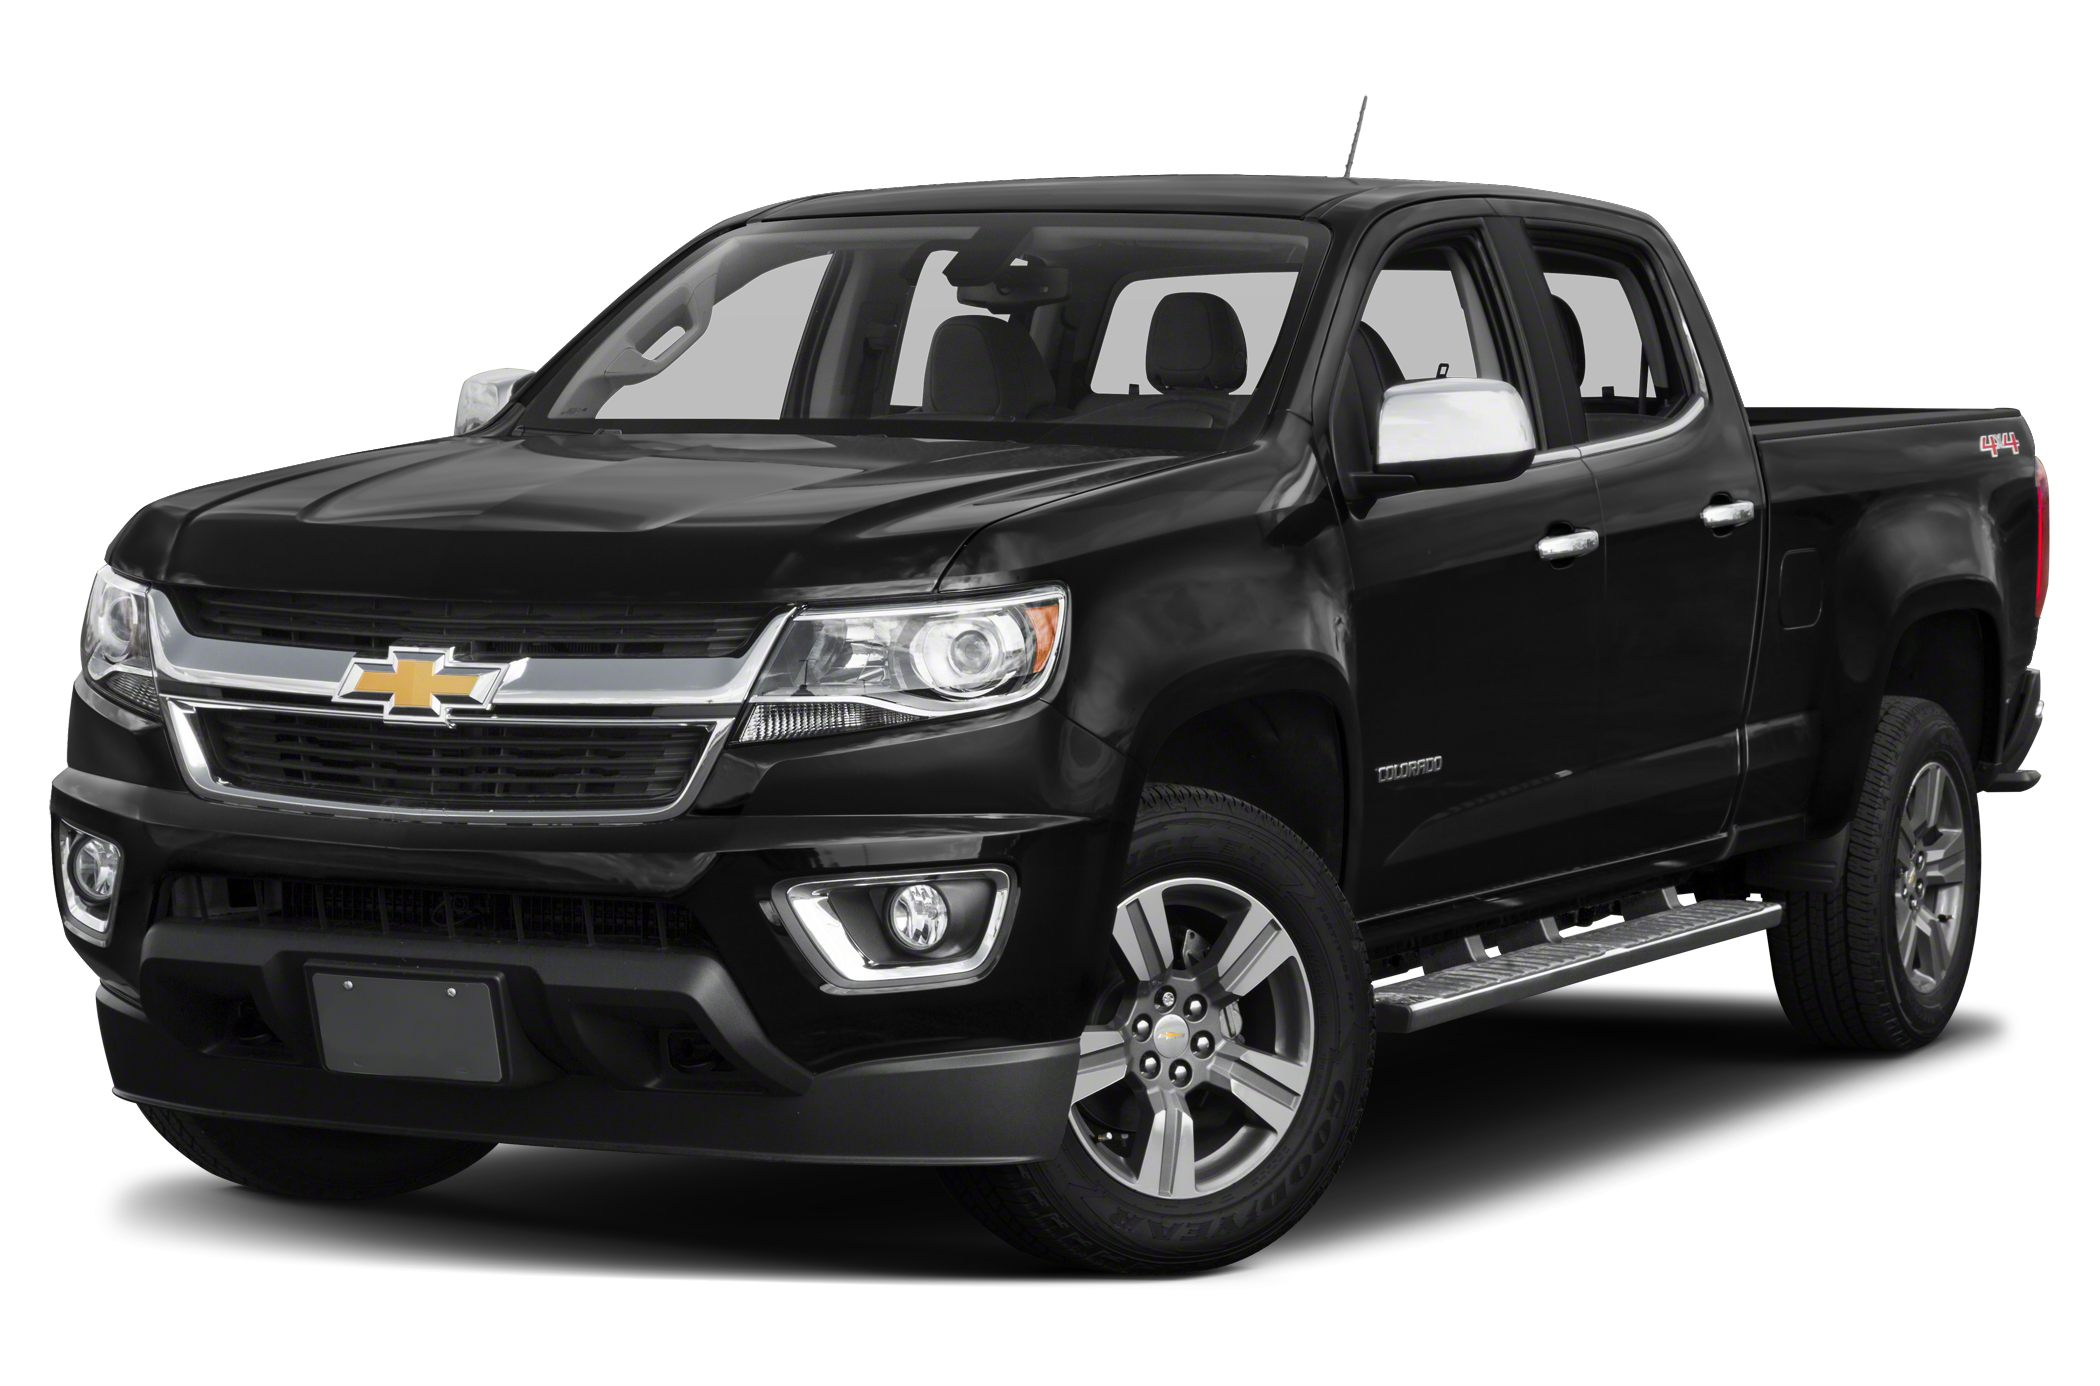 2018 Chevrolet Colorado Lt 4x4 Crew Cab 6 Ft Box 140 5 In Wb Specs And Prices